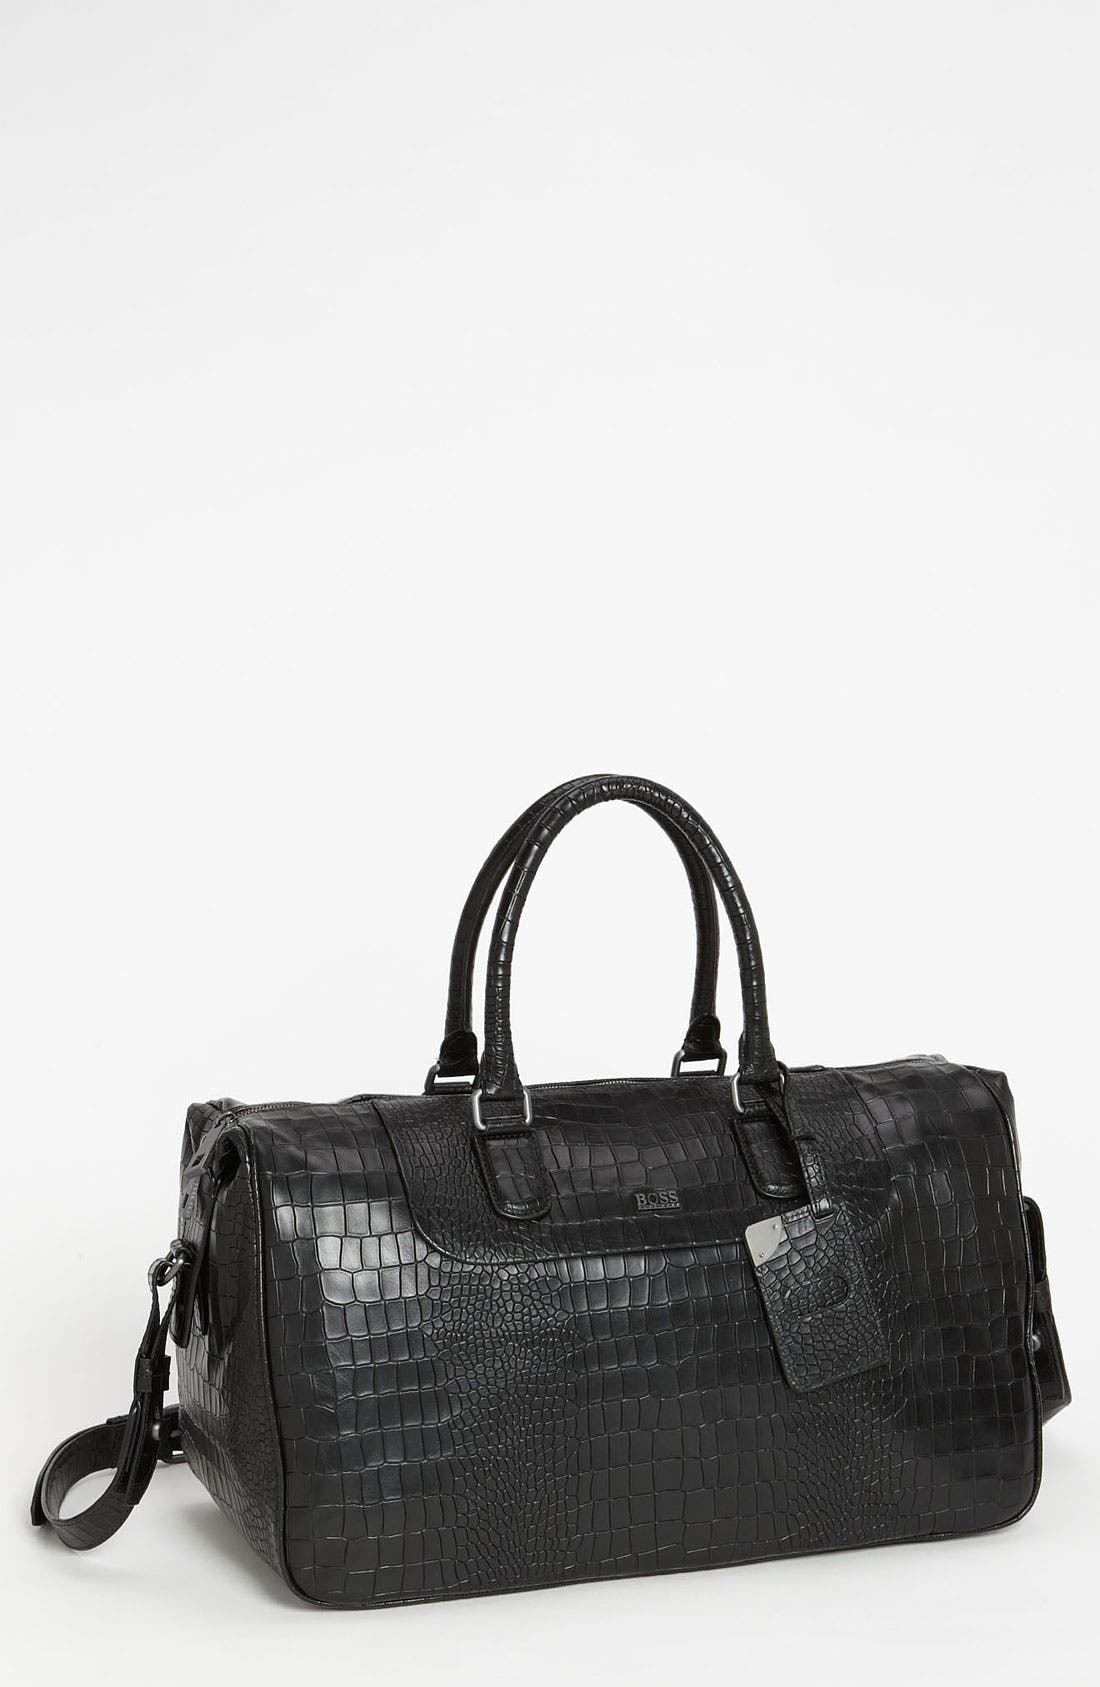 Main Image - BOSS Black 'Ector' Duffel Bag